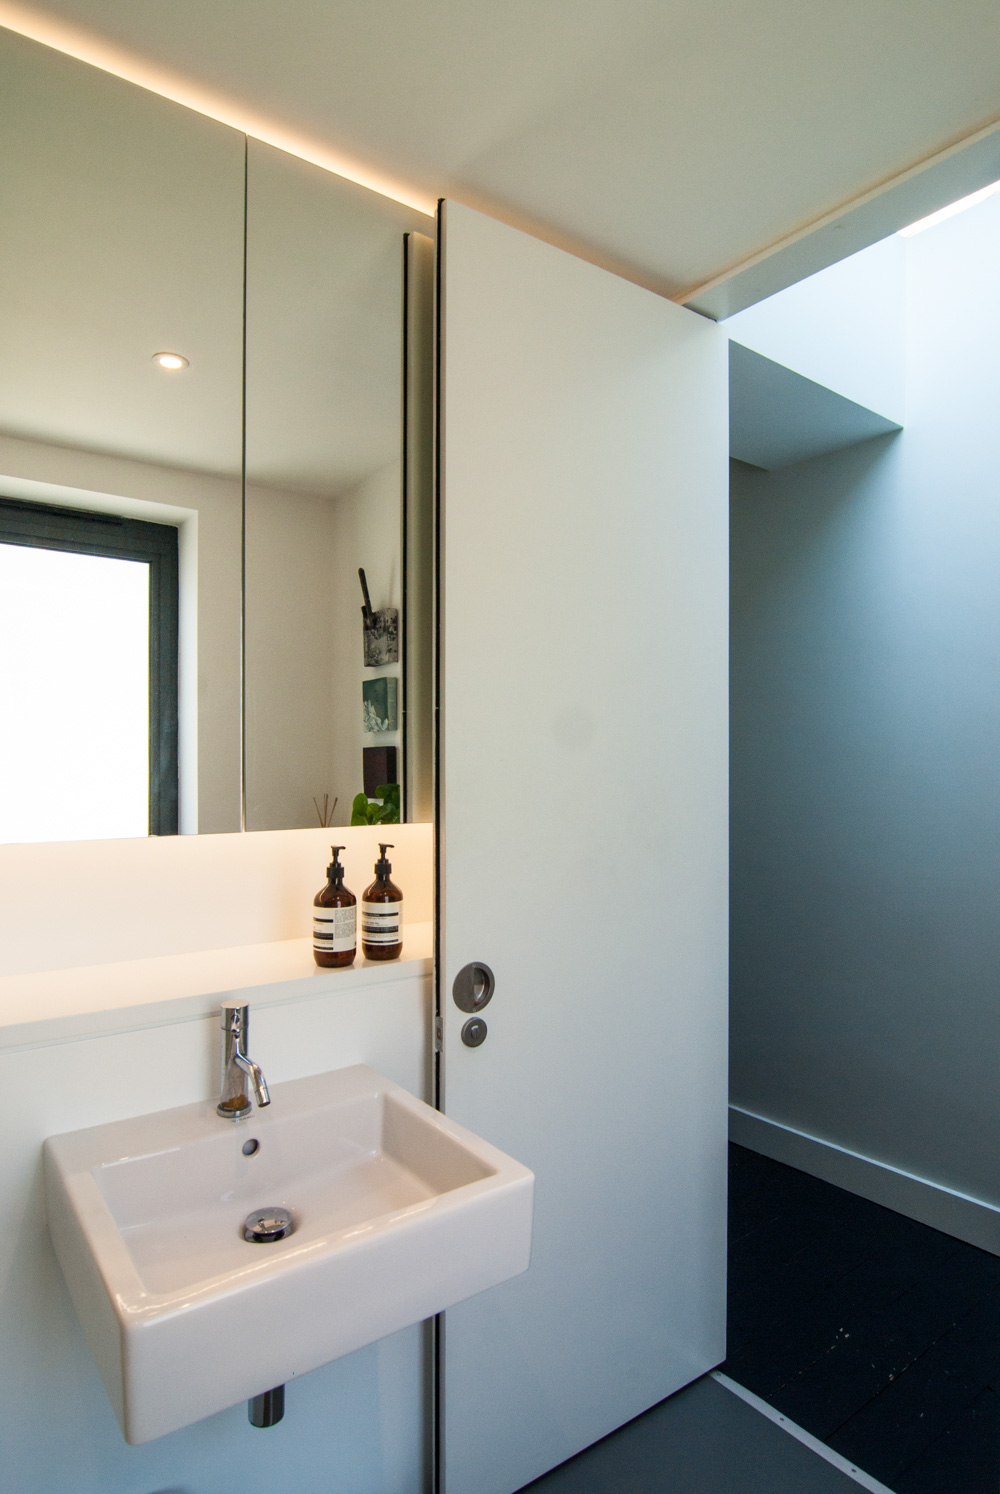 Minimal palette bathroom offers plenty of light to reflect off the mirrors facing the window.